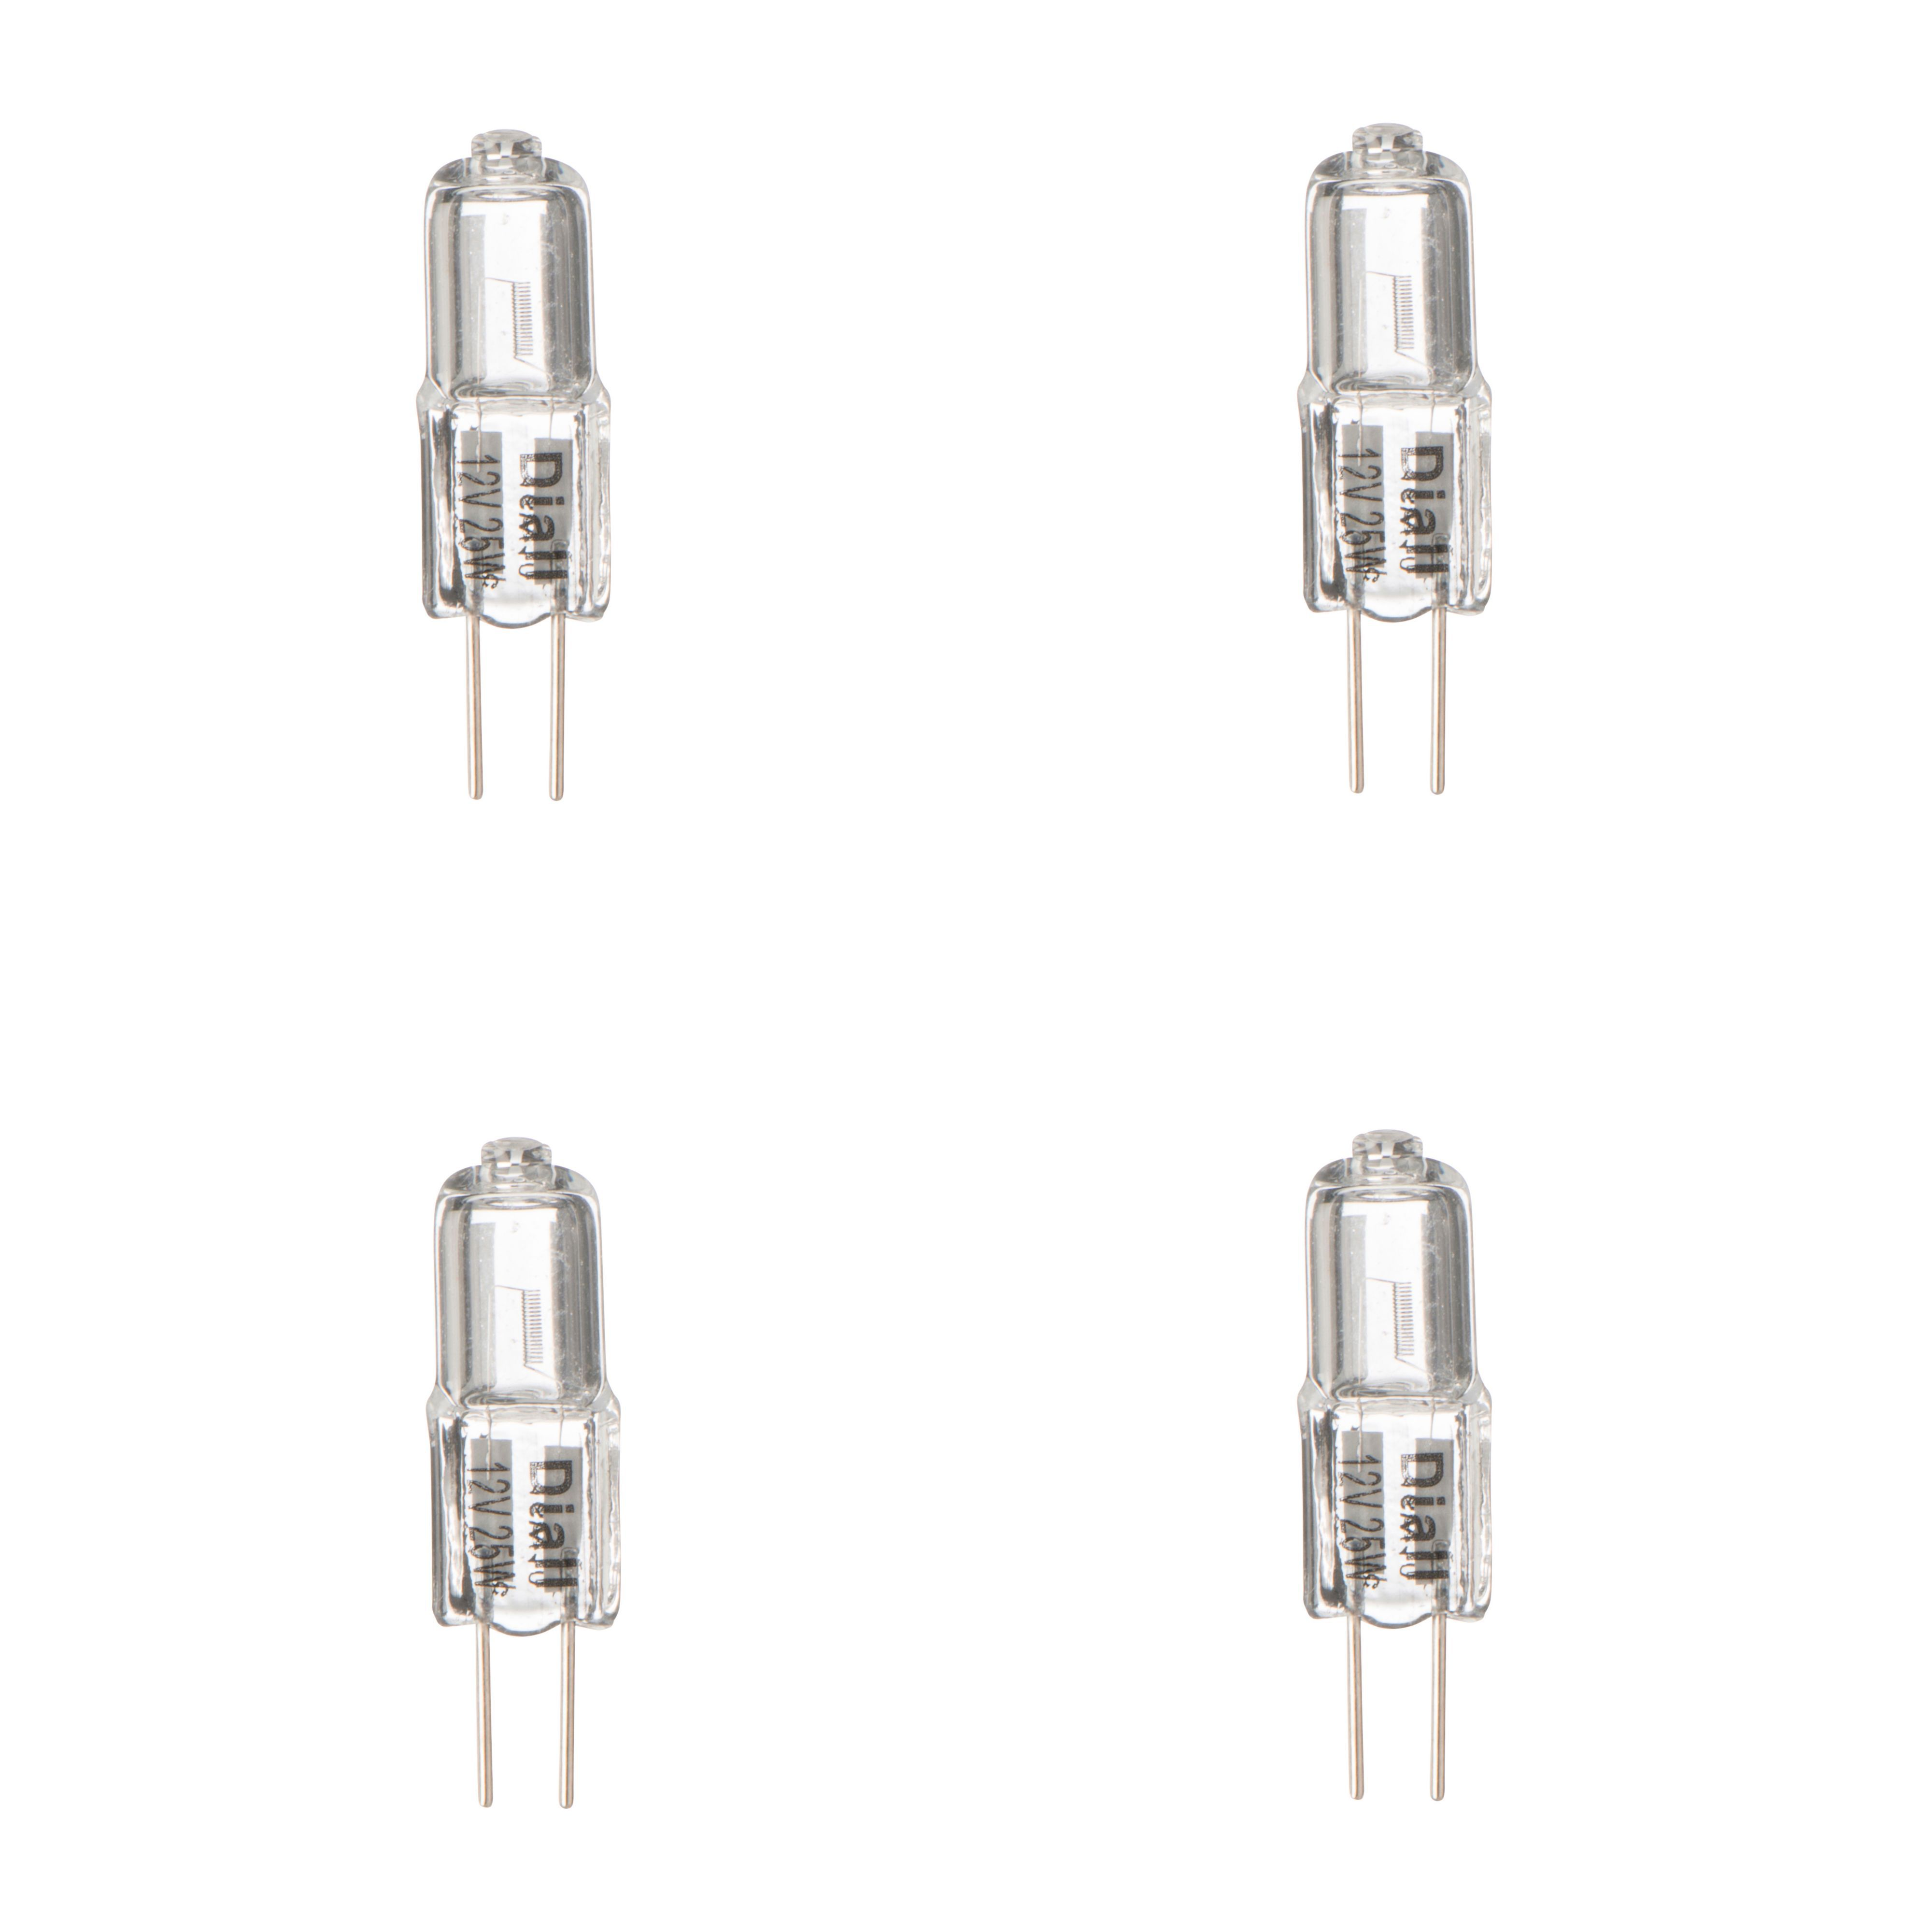 Diall G4 25w Halogen Dimmable Capsule Light Bulb, Pack Of 4